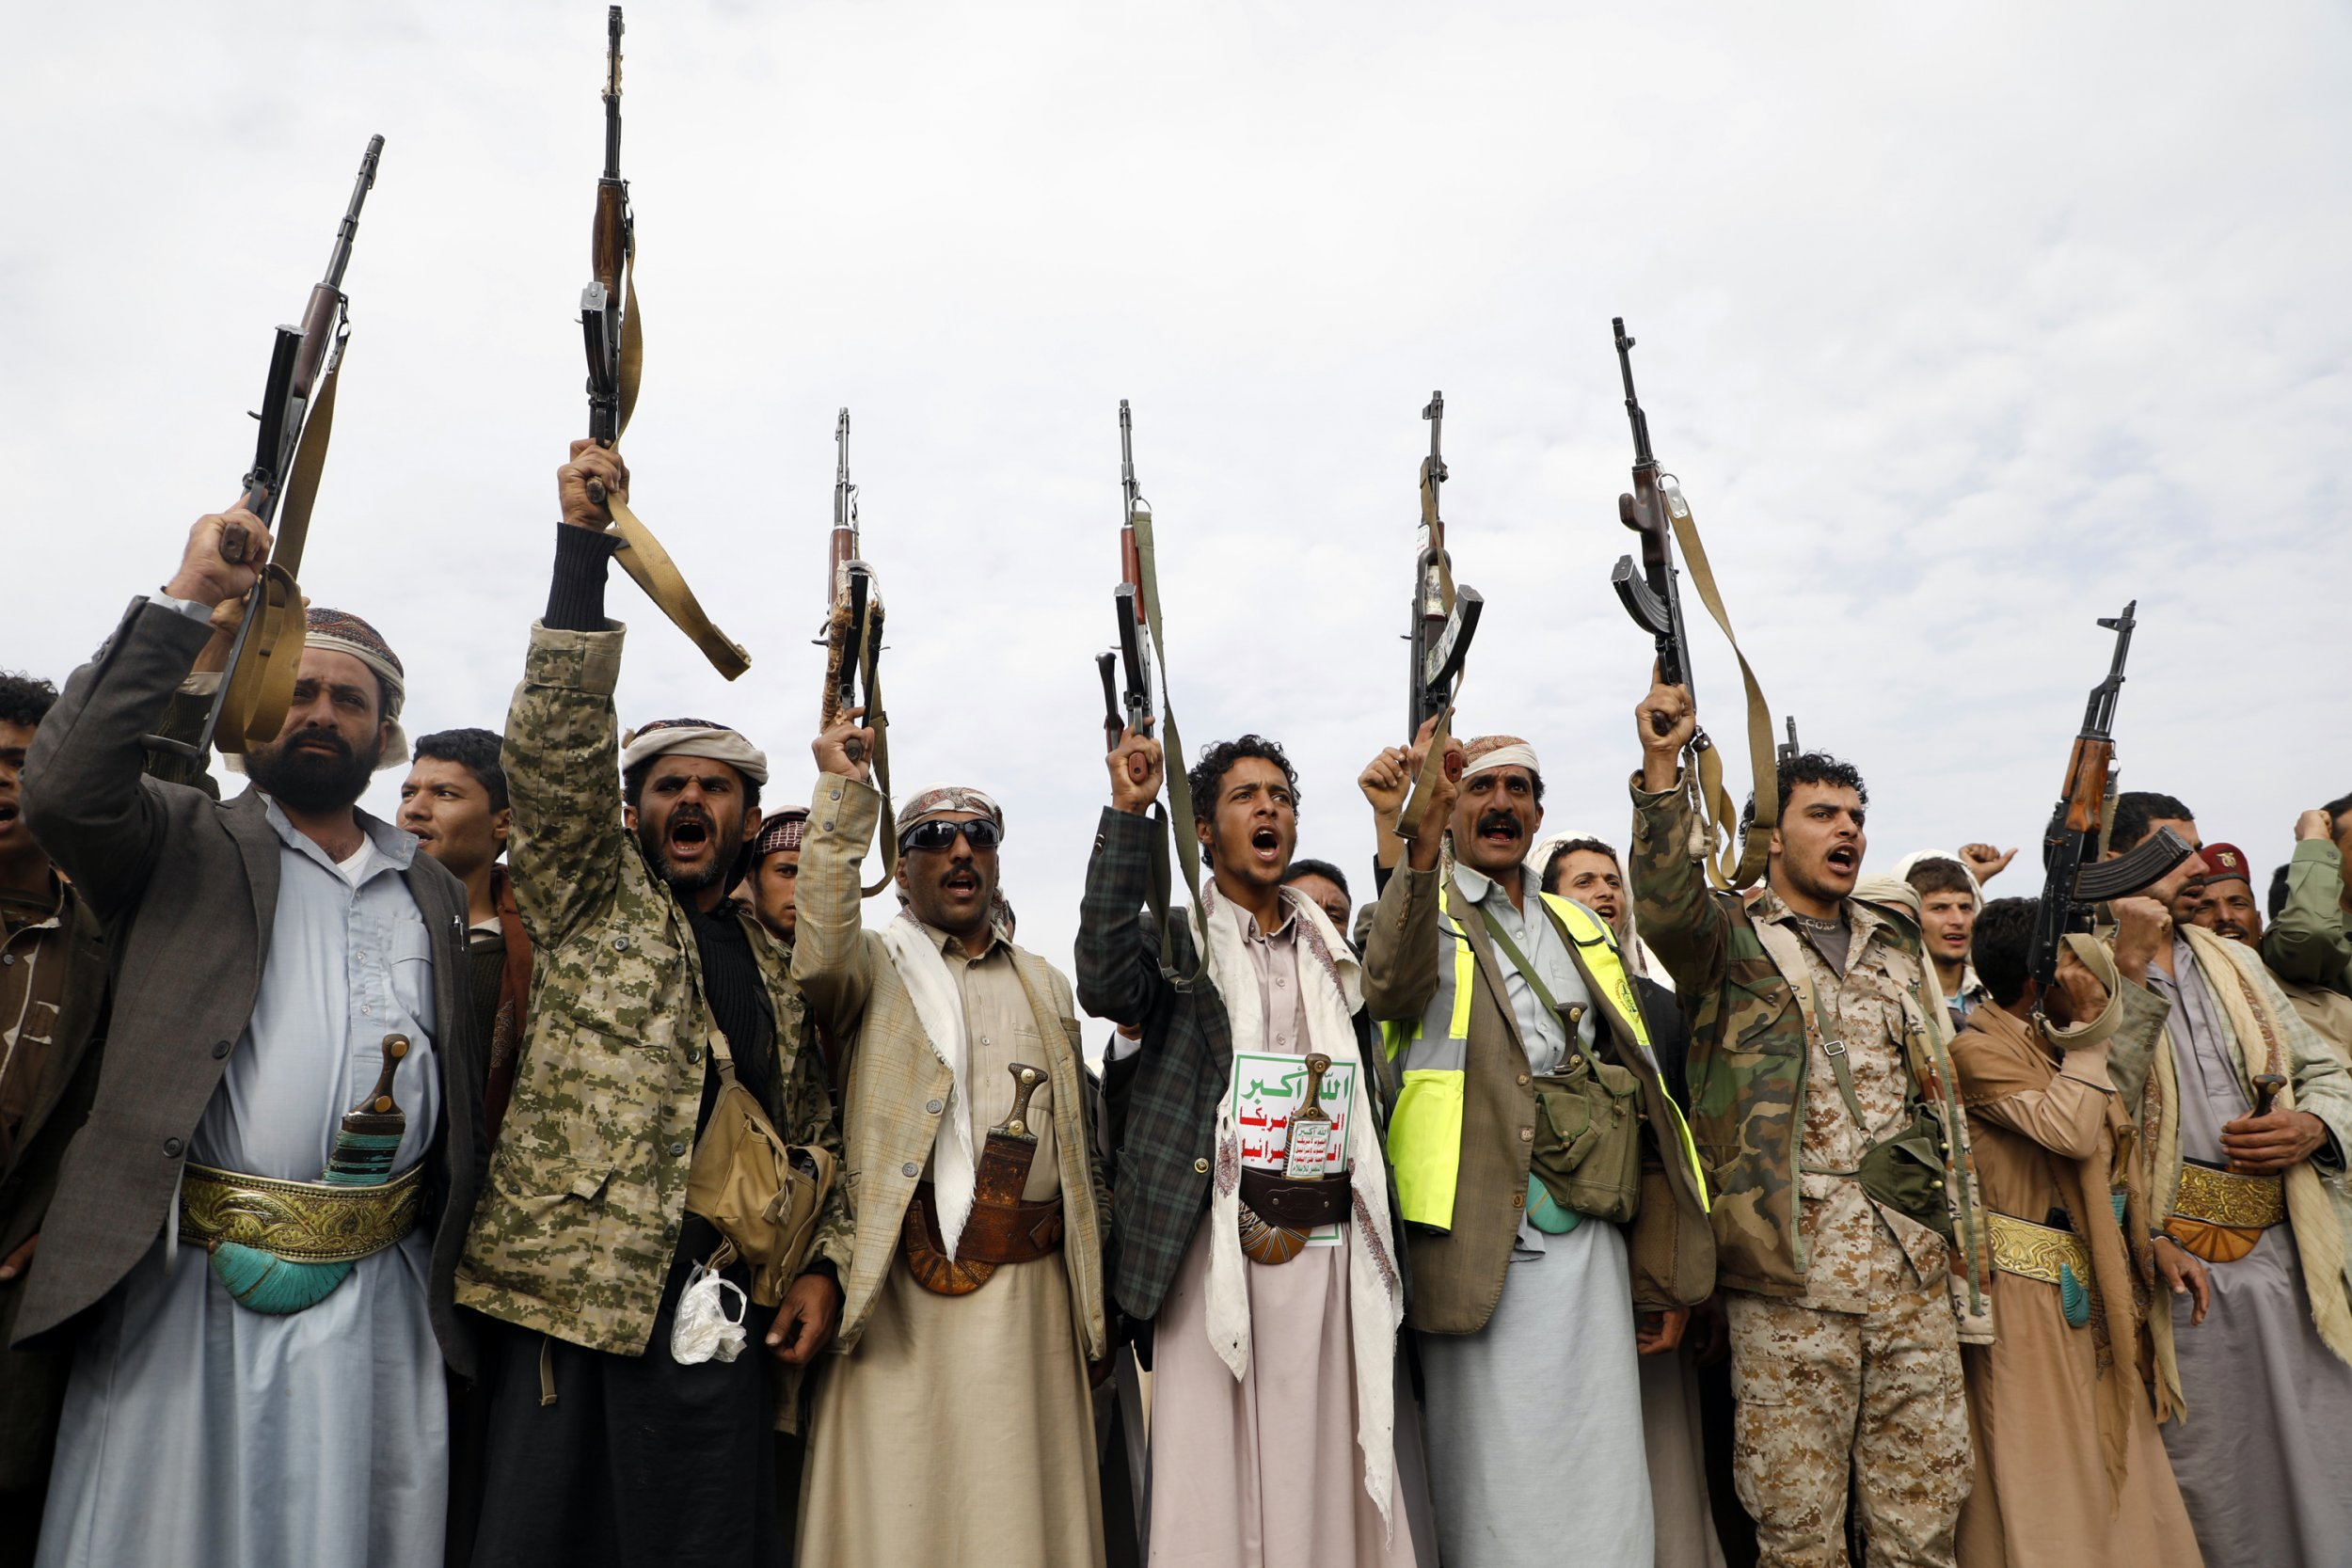 Houthis in Yemen